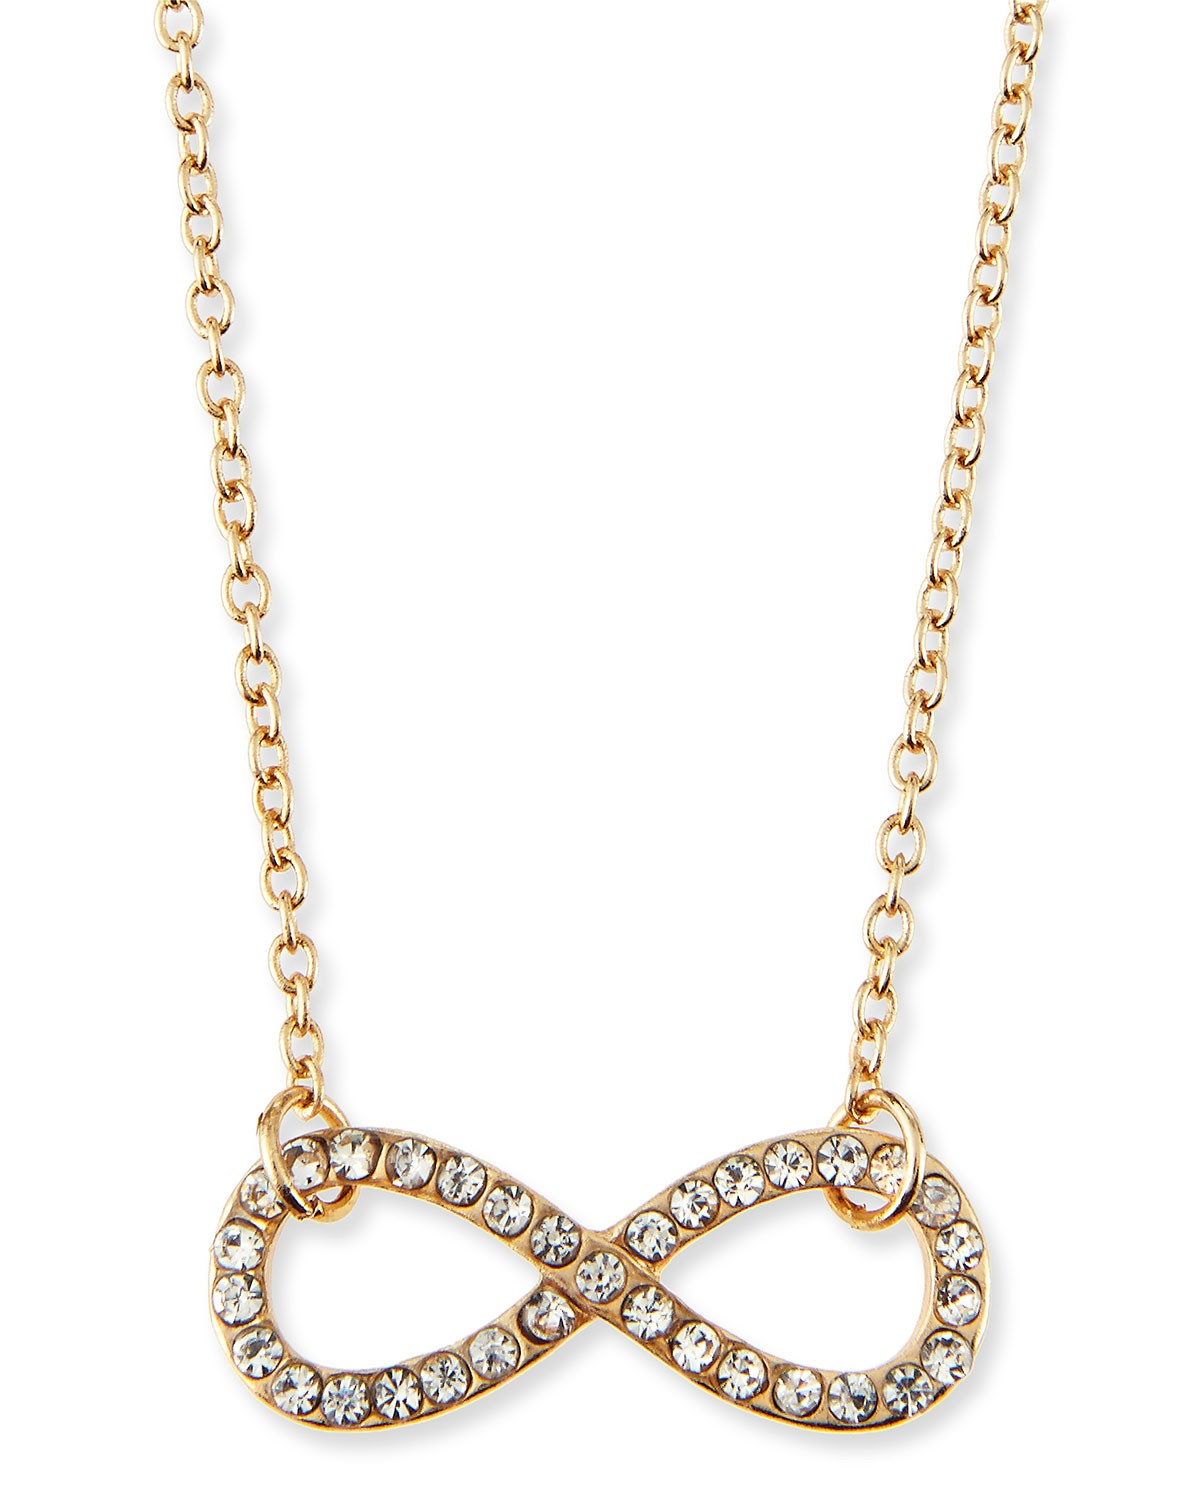 Infinity Charm Pave Crystal Necklace - Jules Smith - Gold (ONE SIZE)